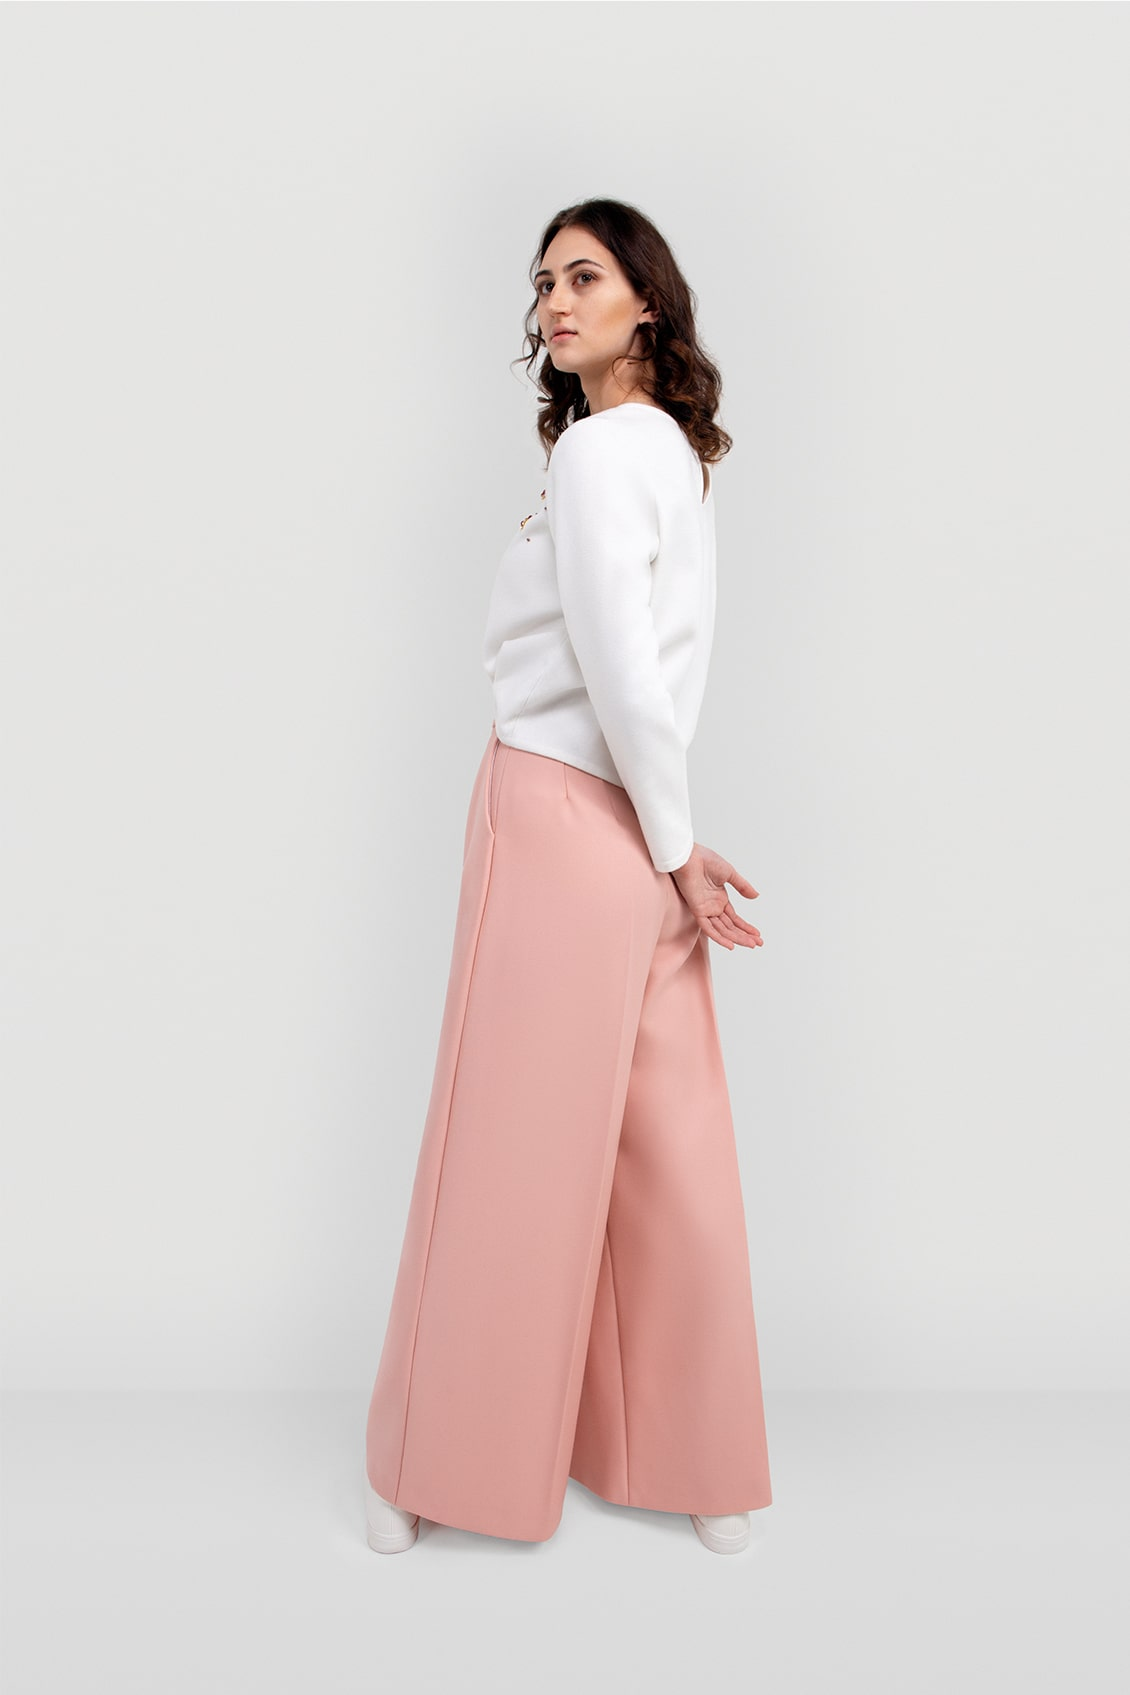 VALDONE Au - Back of the women's tailored suit trousers. Cut from a fine wool fabric in a blush pink colour.